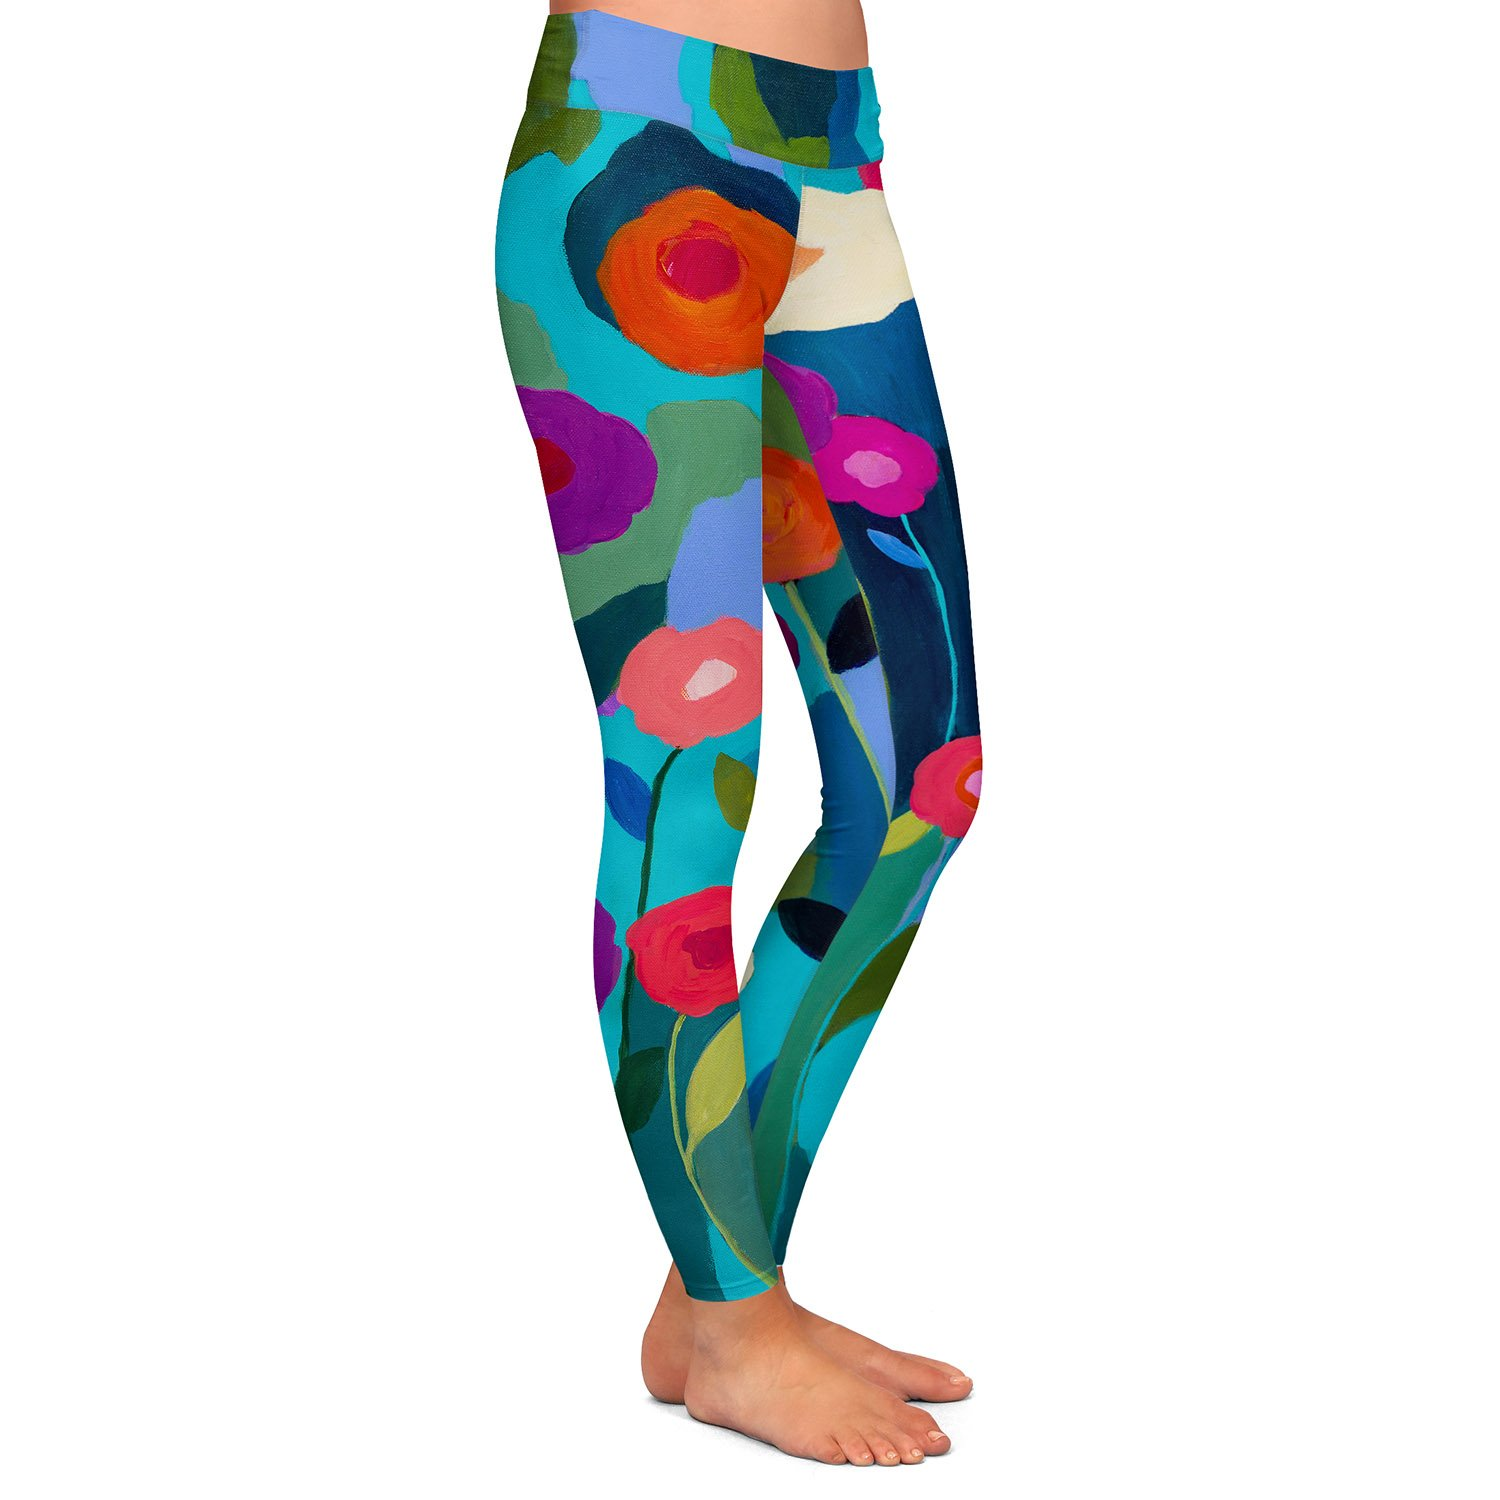 Good Morning Sunshine Athletic Yoga Leggings from DiaNoche by Carrie Schmitt